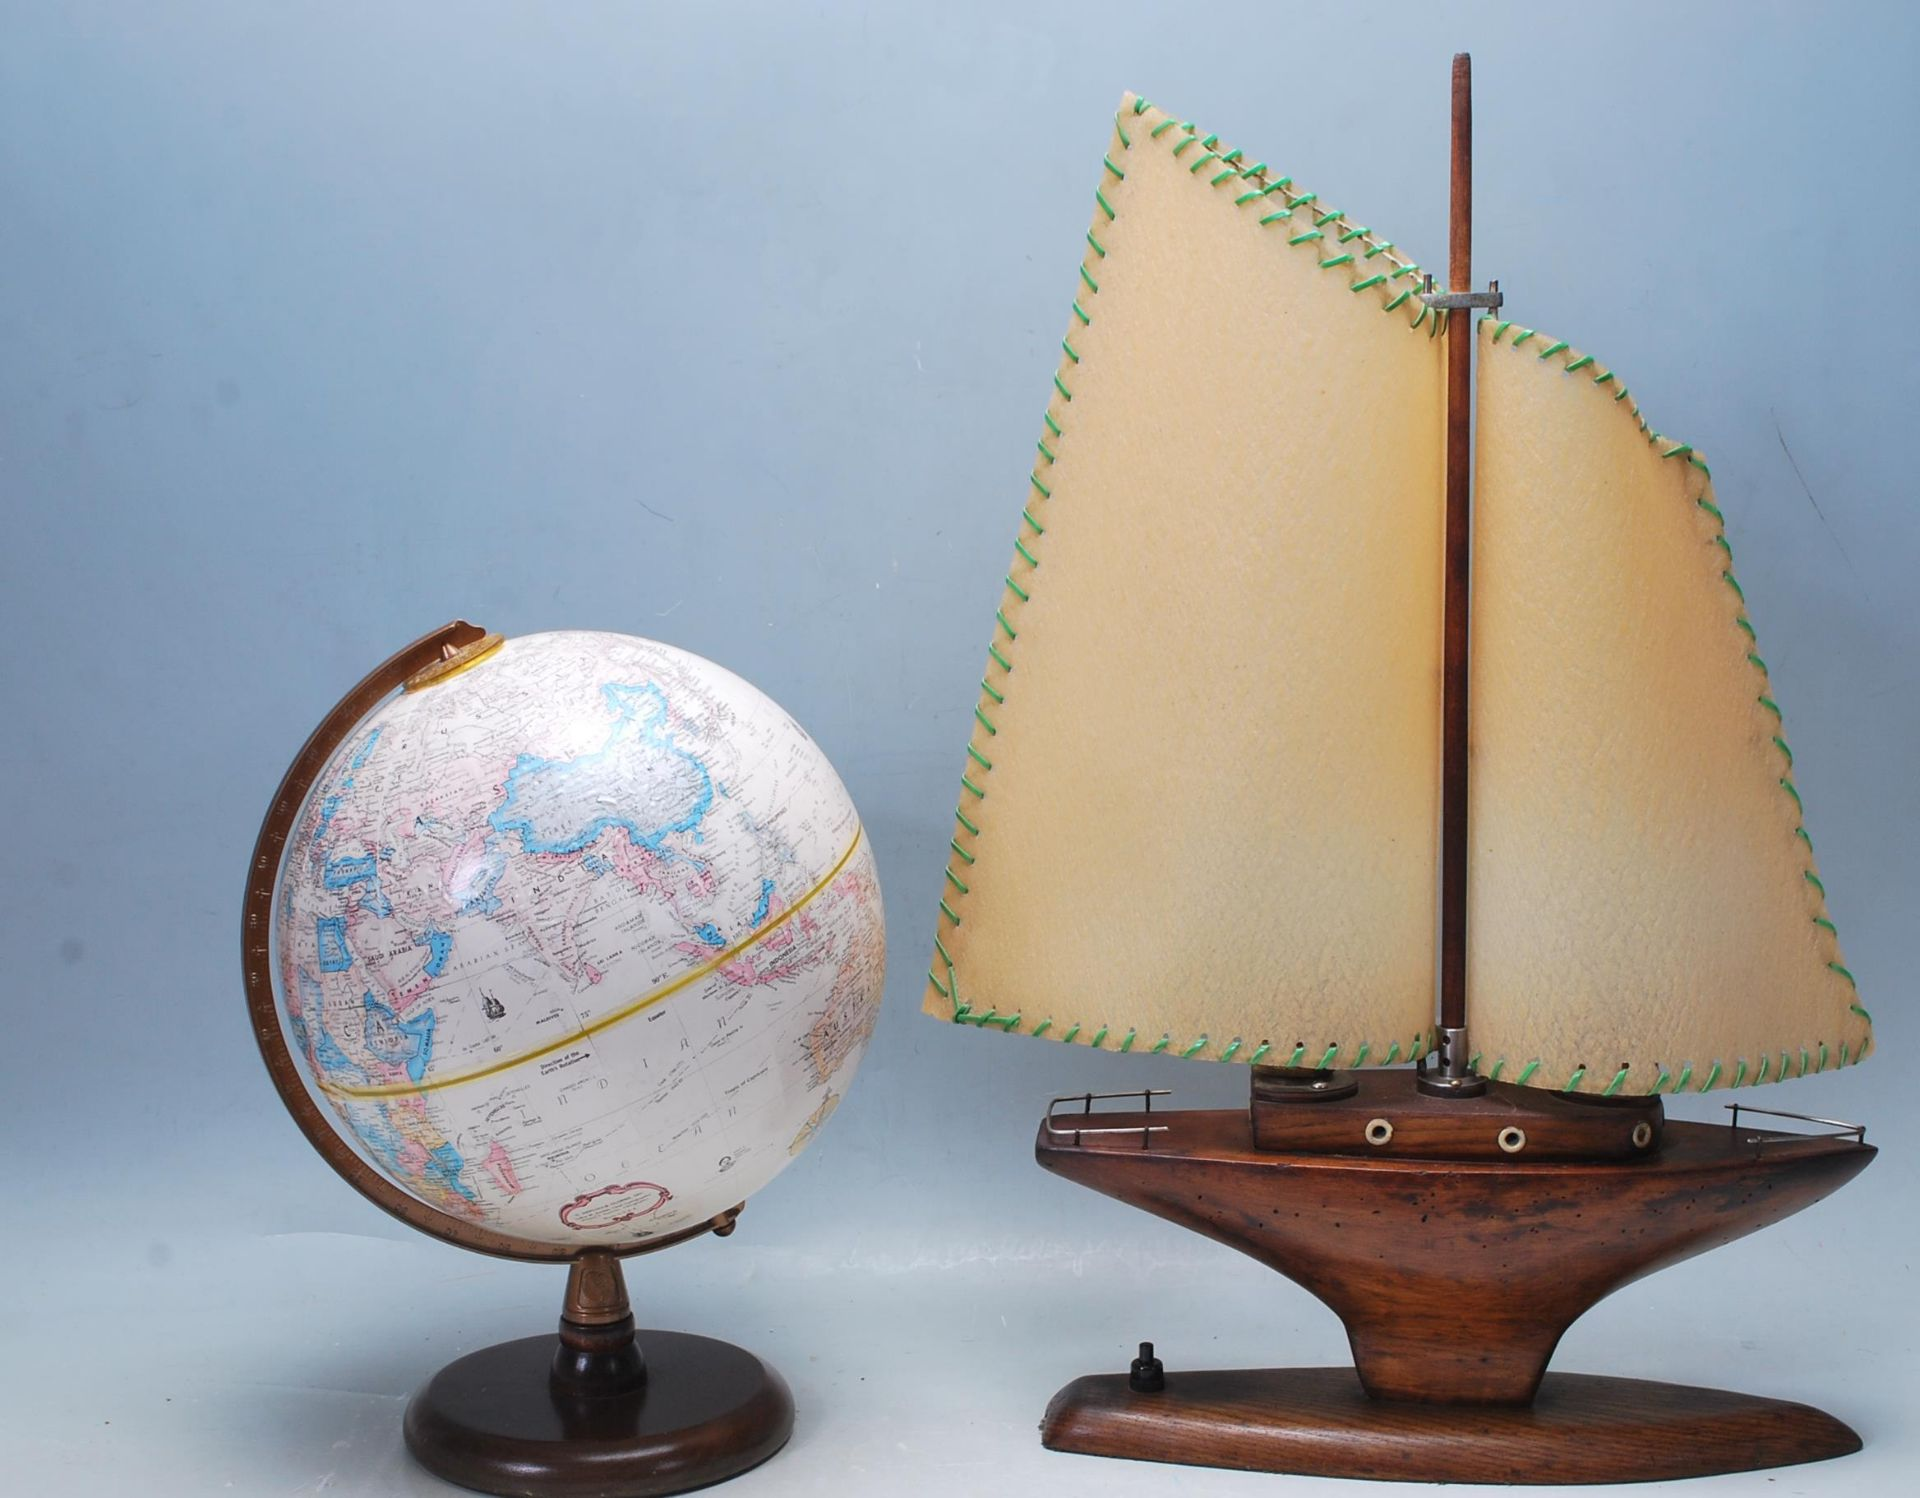 RETRO 20TH CENTURY WOODEN SAILING YACHT TABLE LAMP AND GLOBE - Image 6 of 6